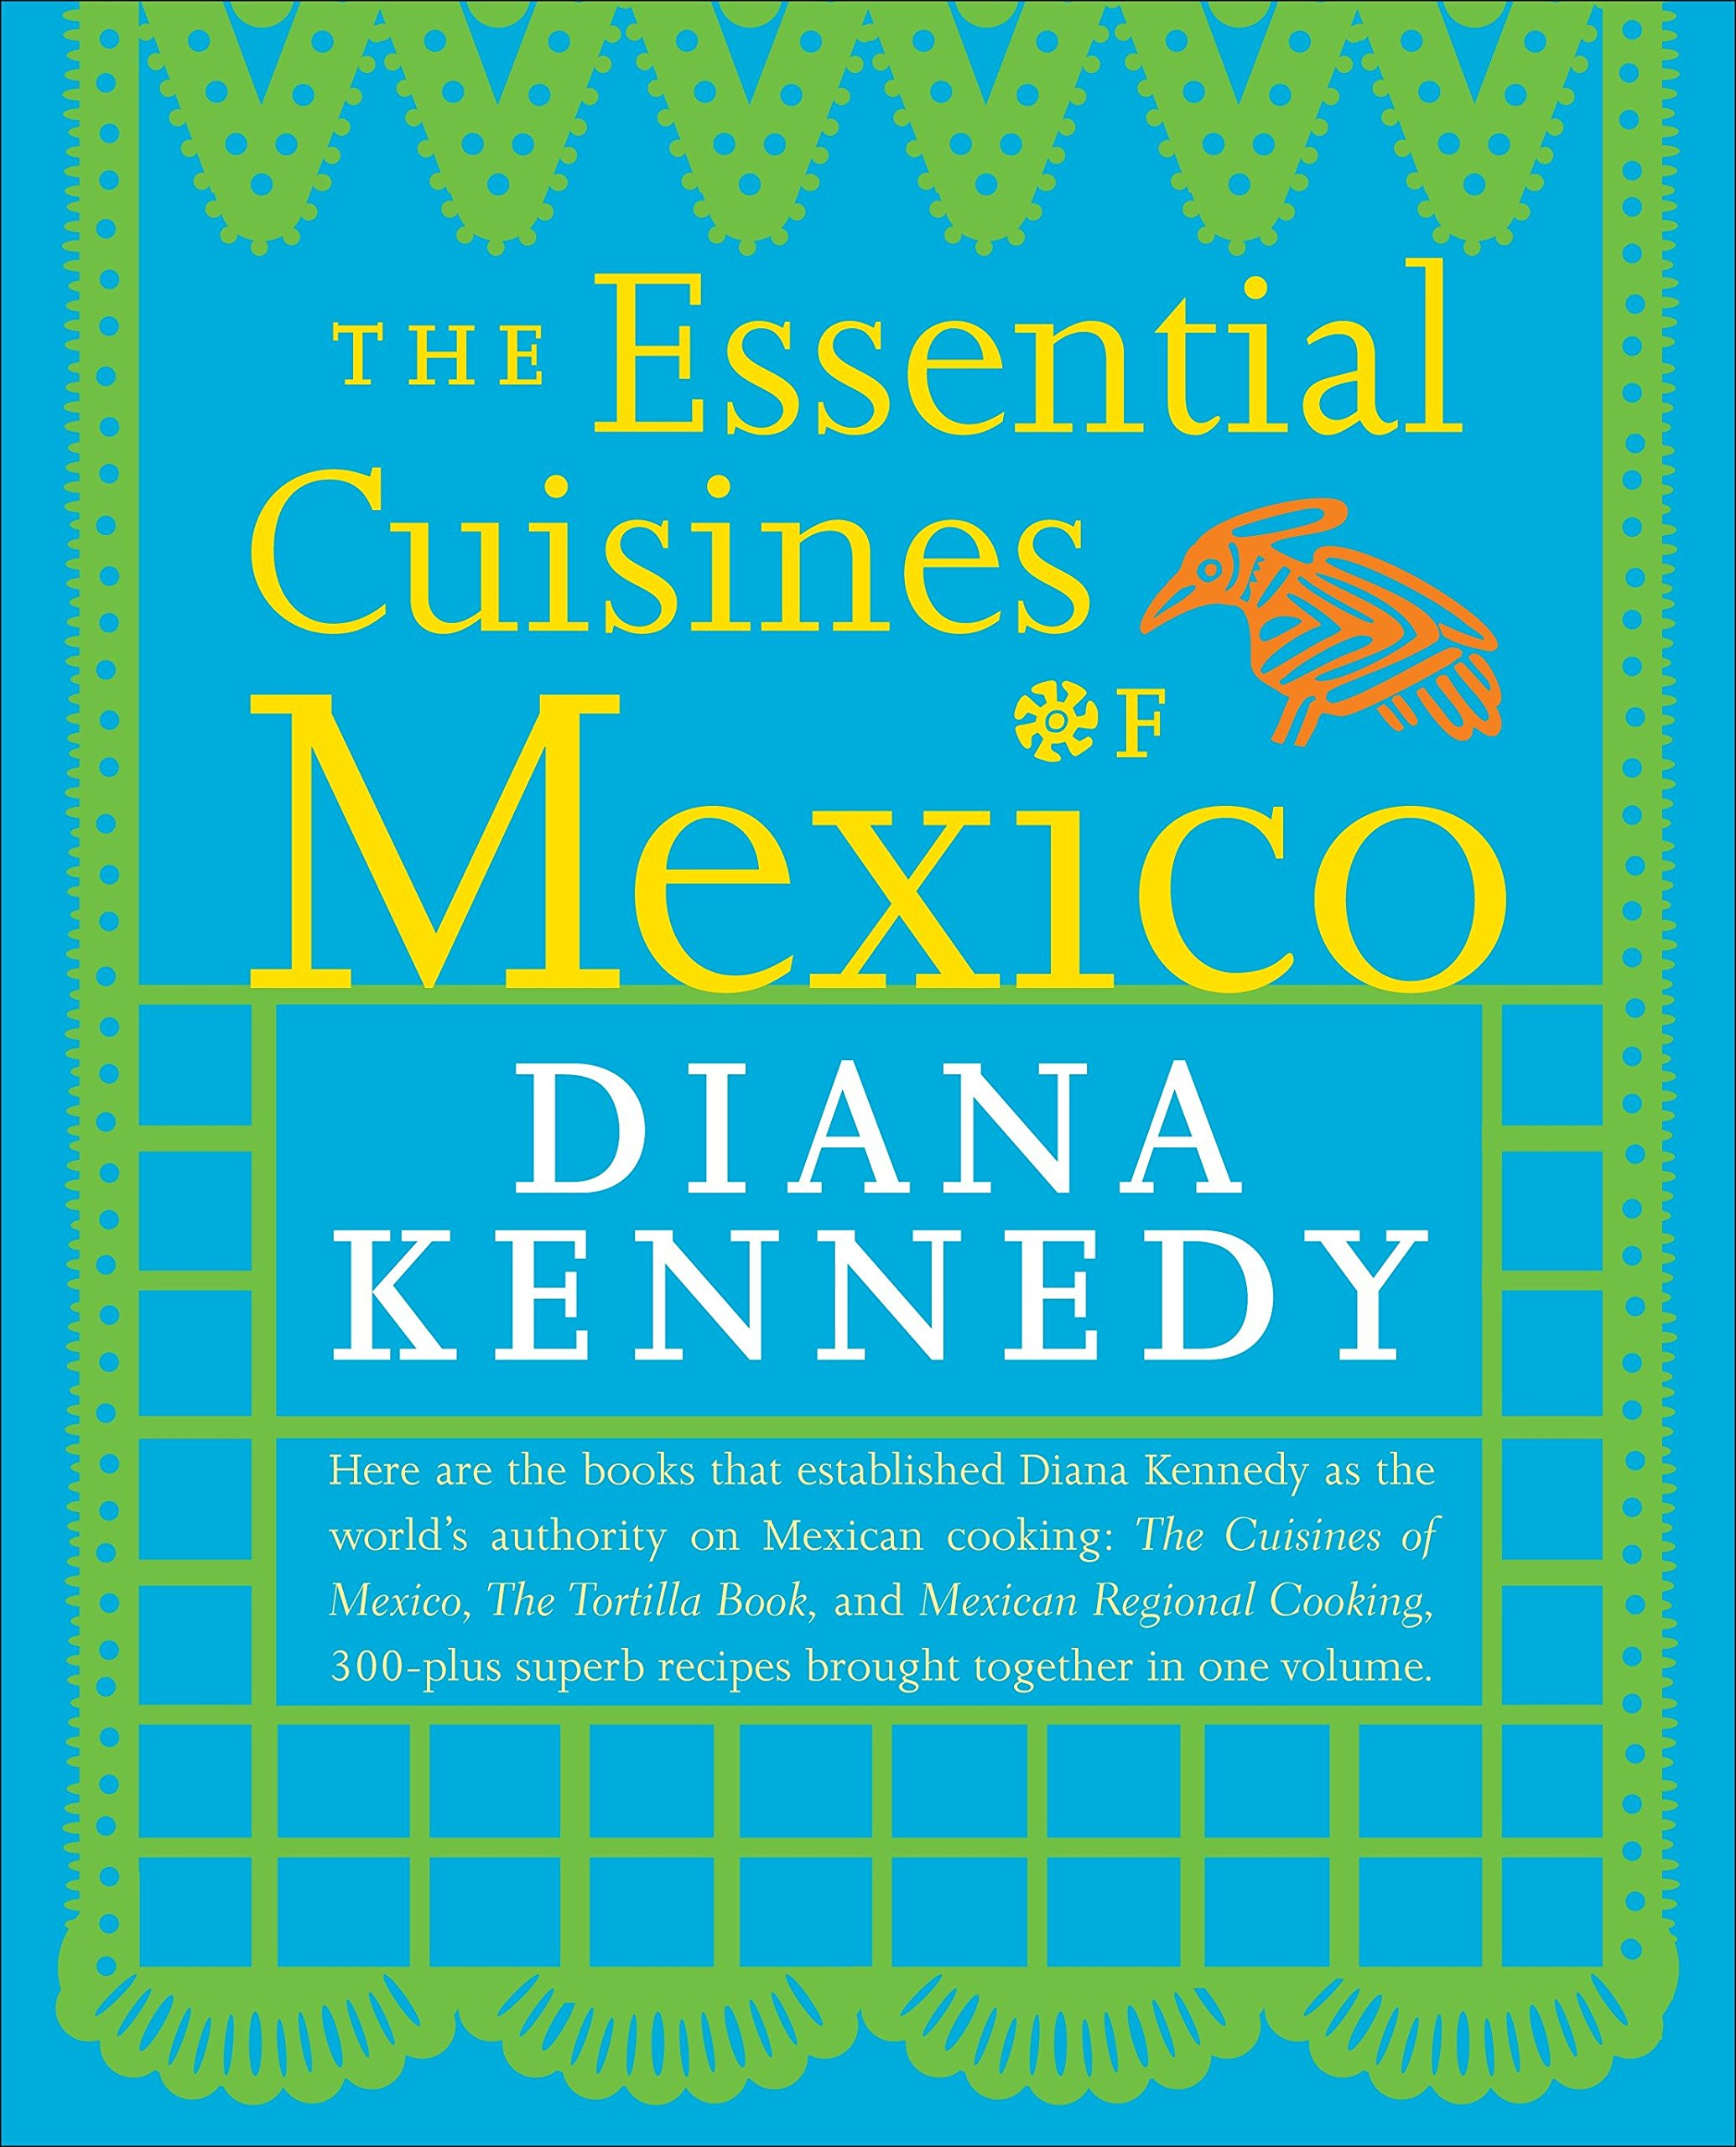 The Essential Cuisines of Mexico: Diana Kennedy: 9780307587725 ...